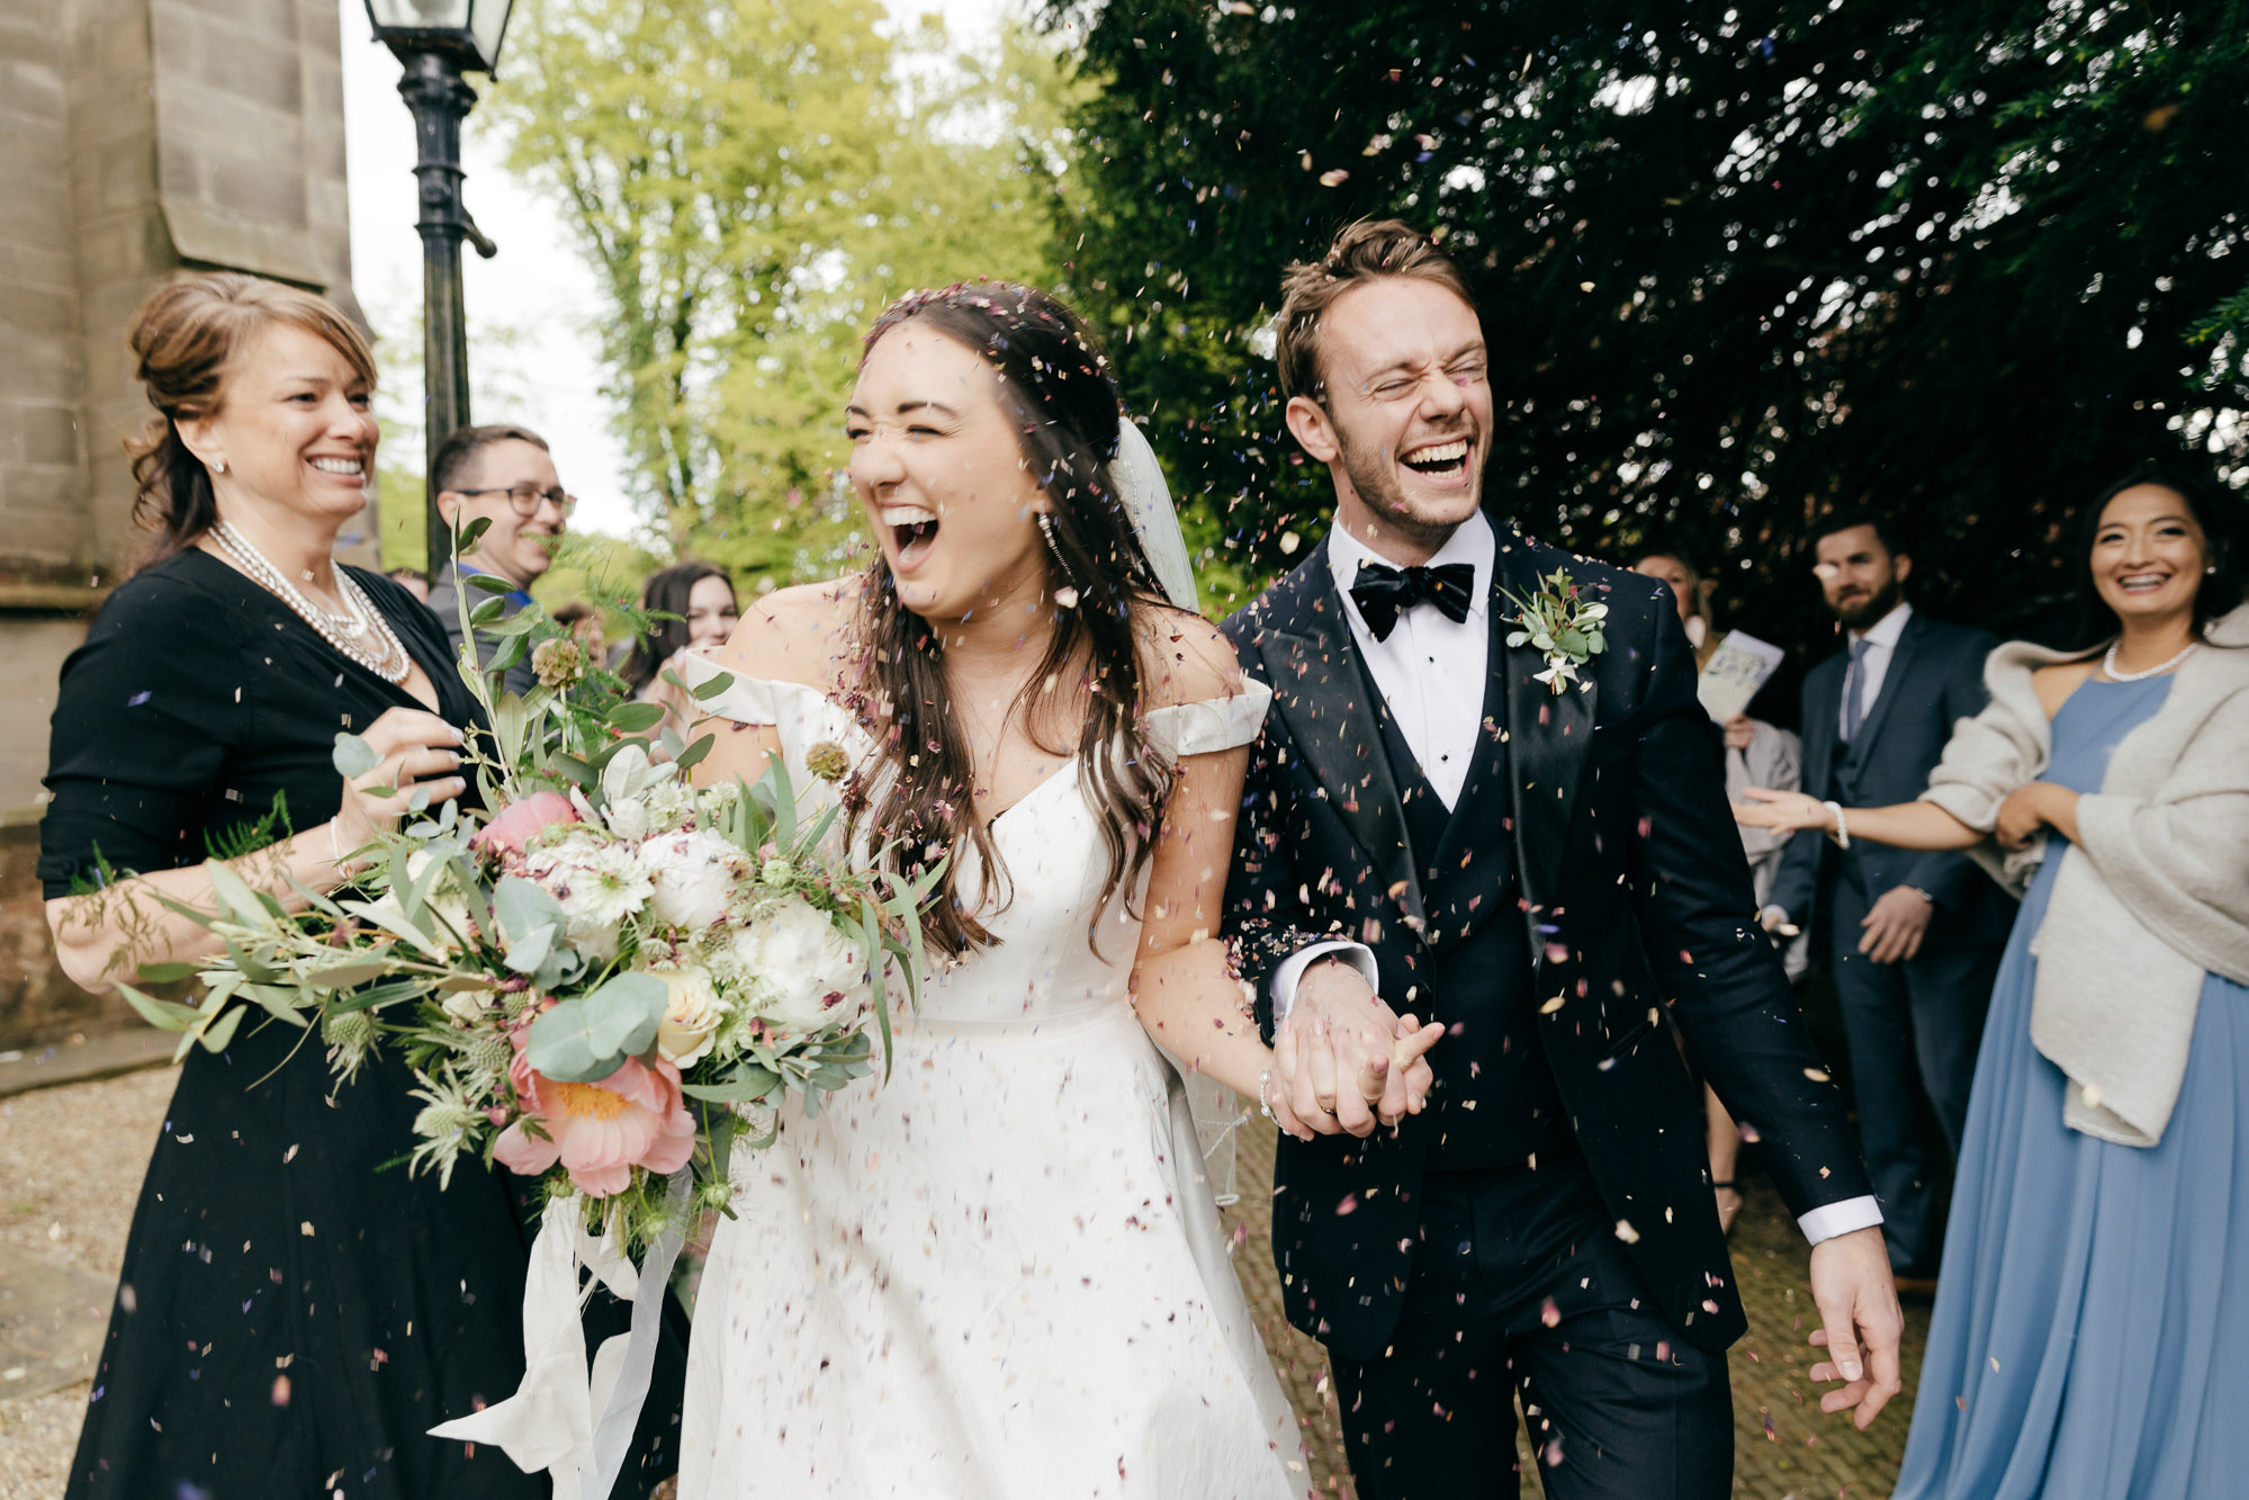 Fun joyful and natural wedding photo of confetti throw outside church